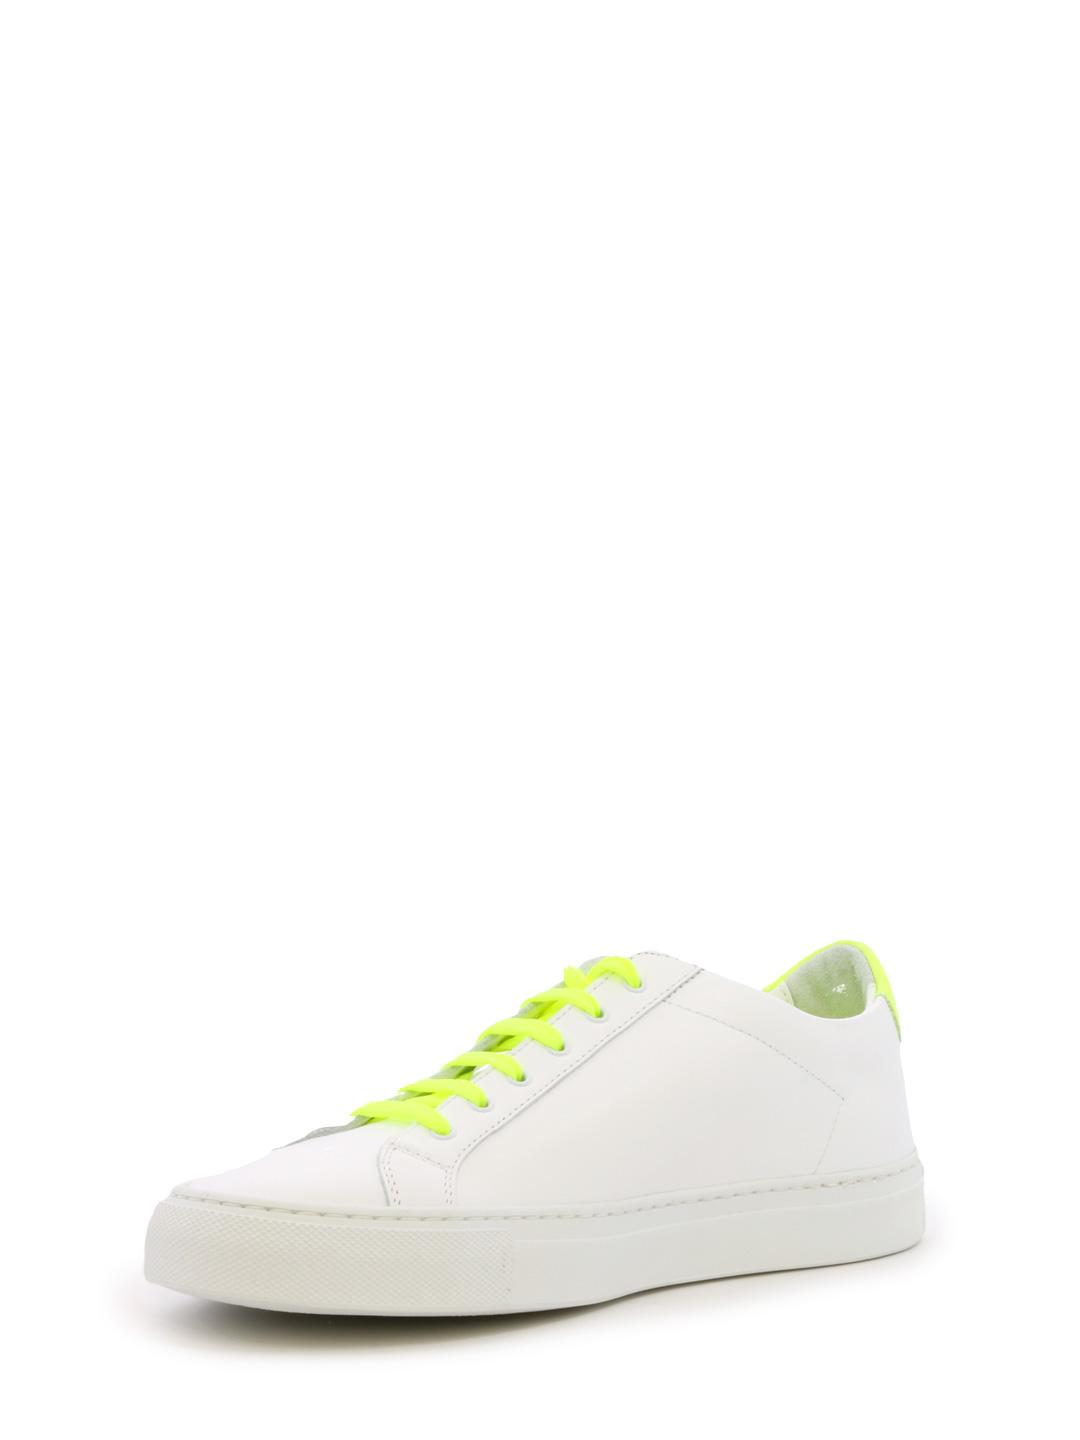 Common Projects Sneaker Yellow Neon